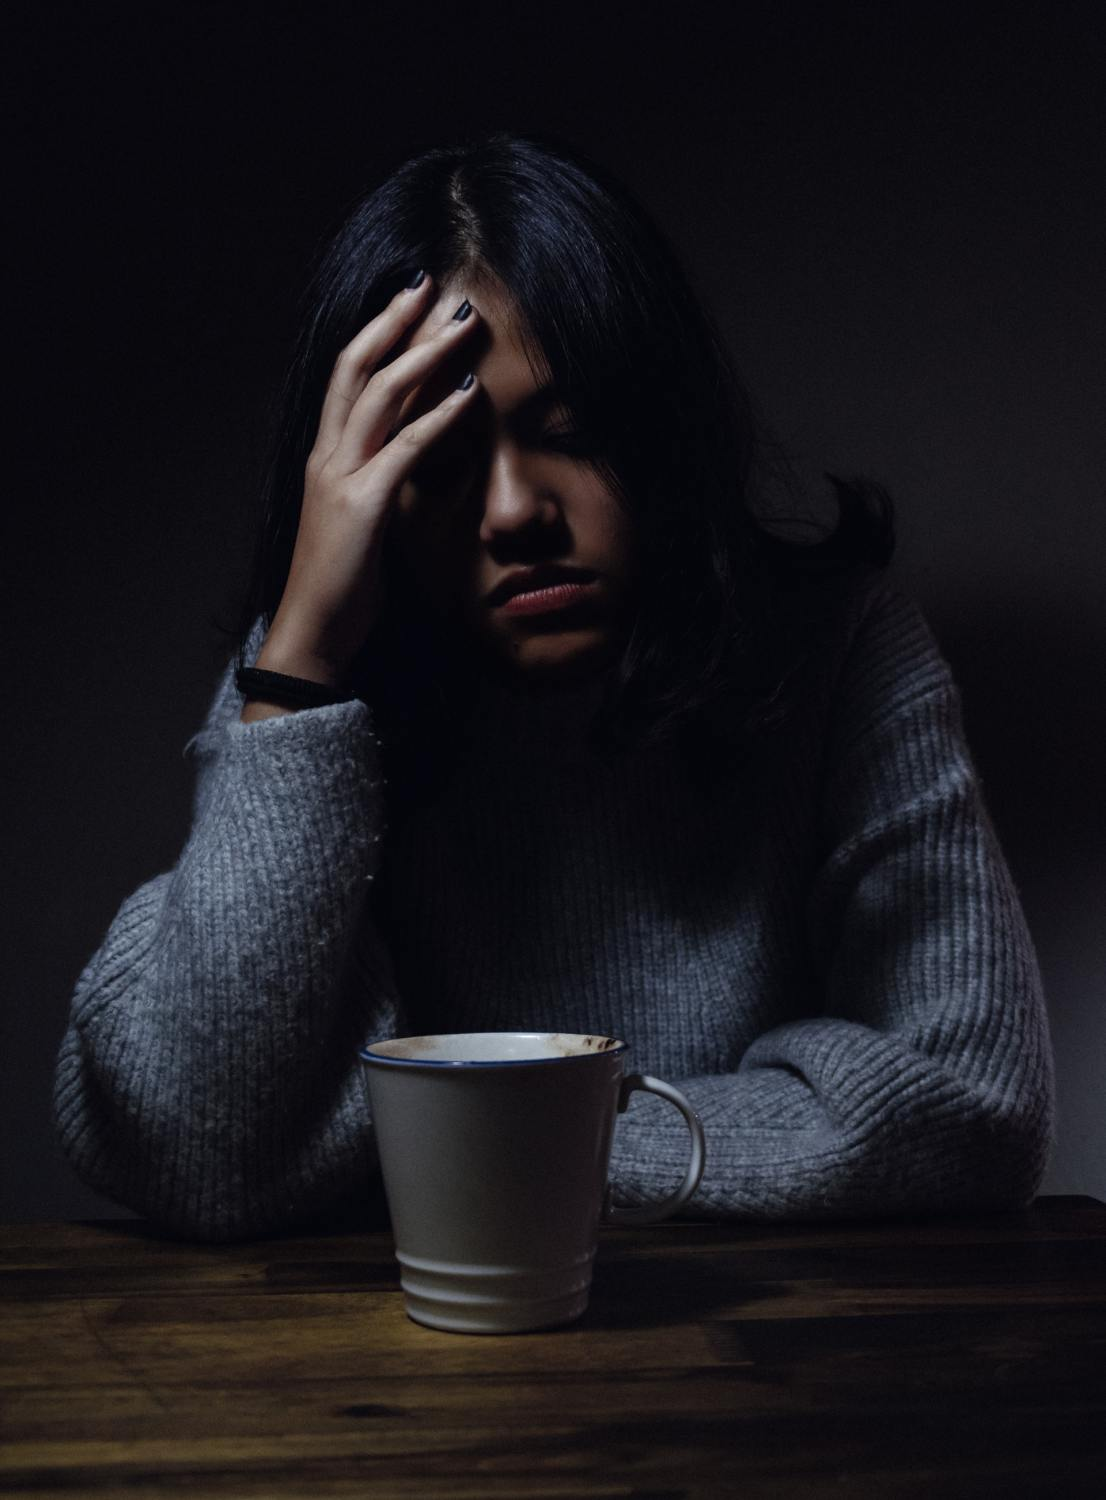 The Saddest Zodiac Signs: Depression Comes Easily To These Folks